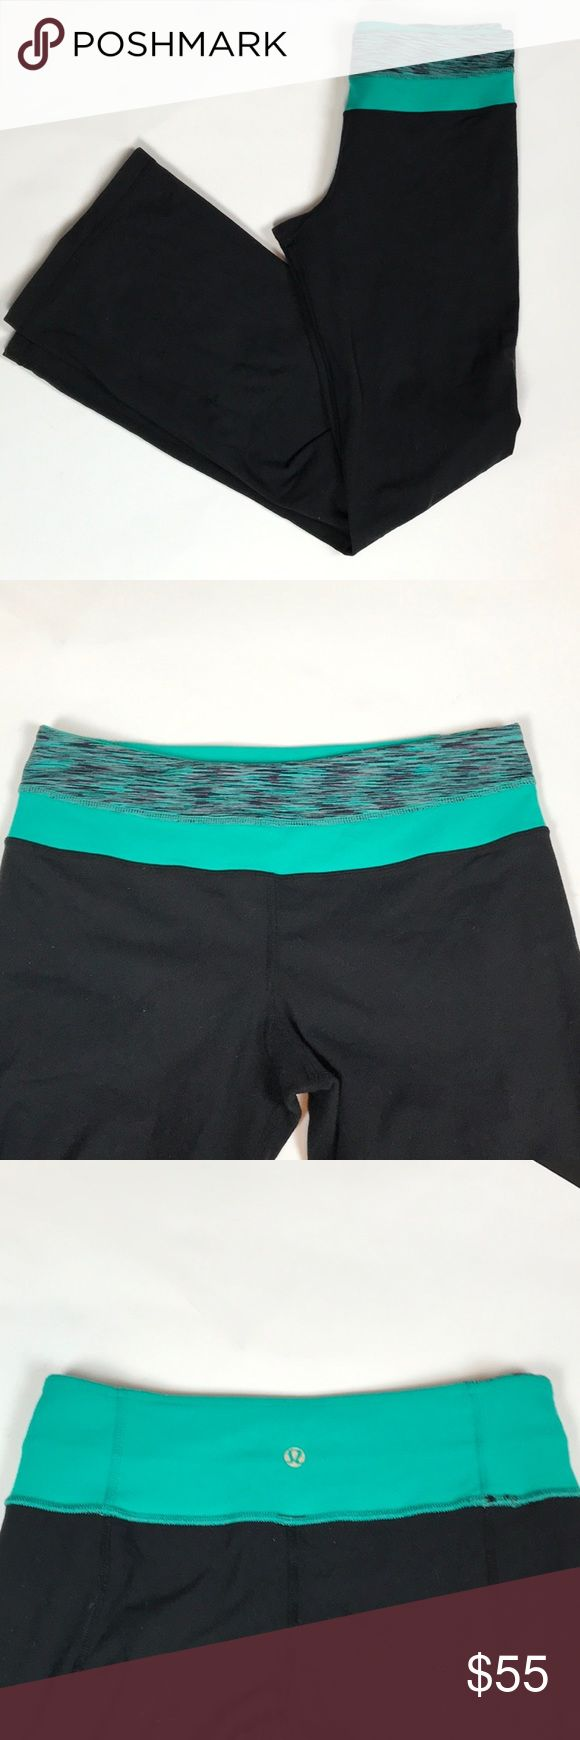 Lululemon Reversible Wide Leg Pants - Size 4 Reversible pants with a solid turquoise waistband and other side is wee stripe turquoise/black/purple colors - Lululemon logo is at back of the waistband on each side - No logo at bottom of calf area - Size 4 lululemon athletica Pants Boot Cut & Flare